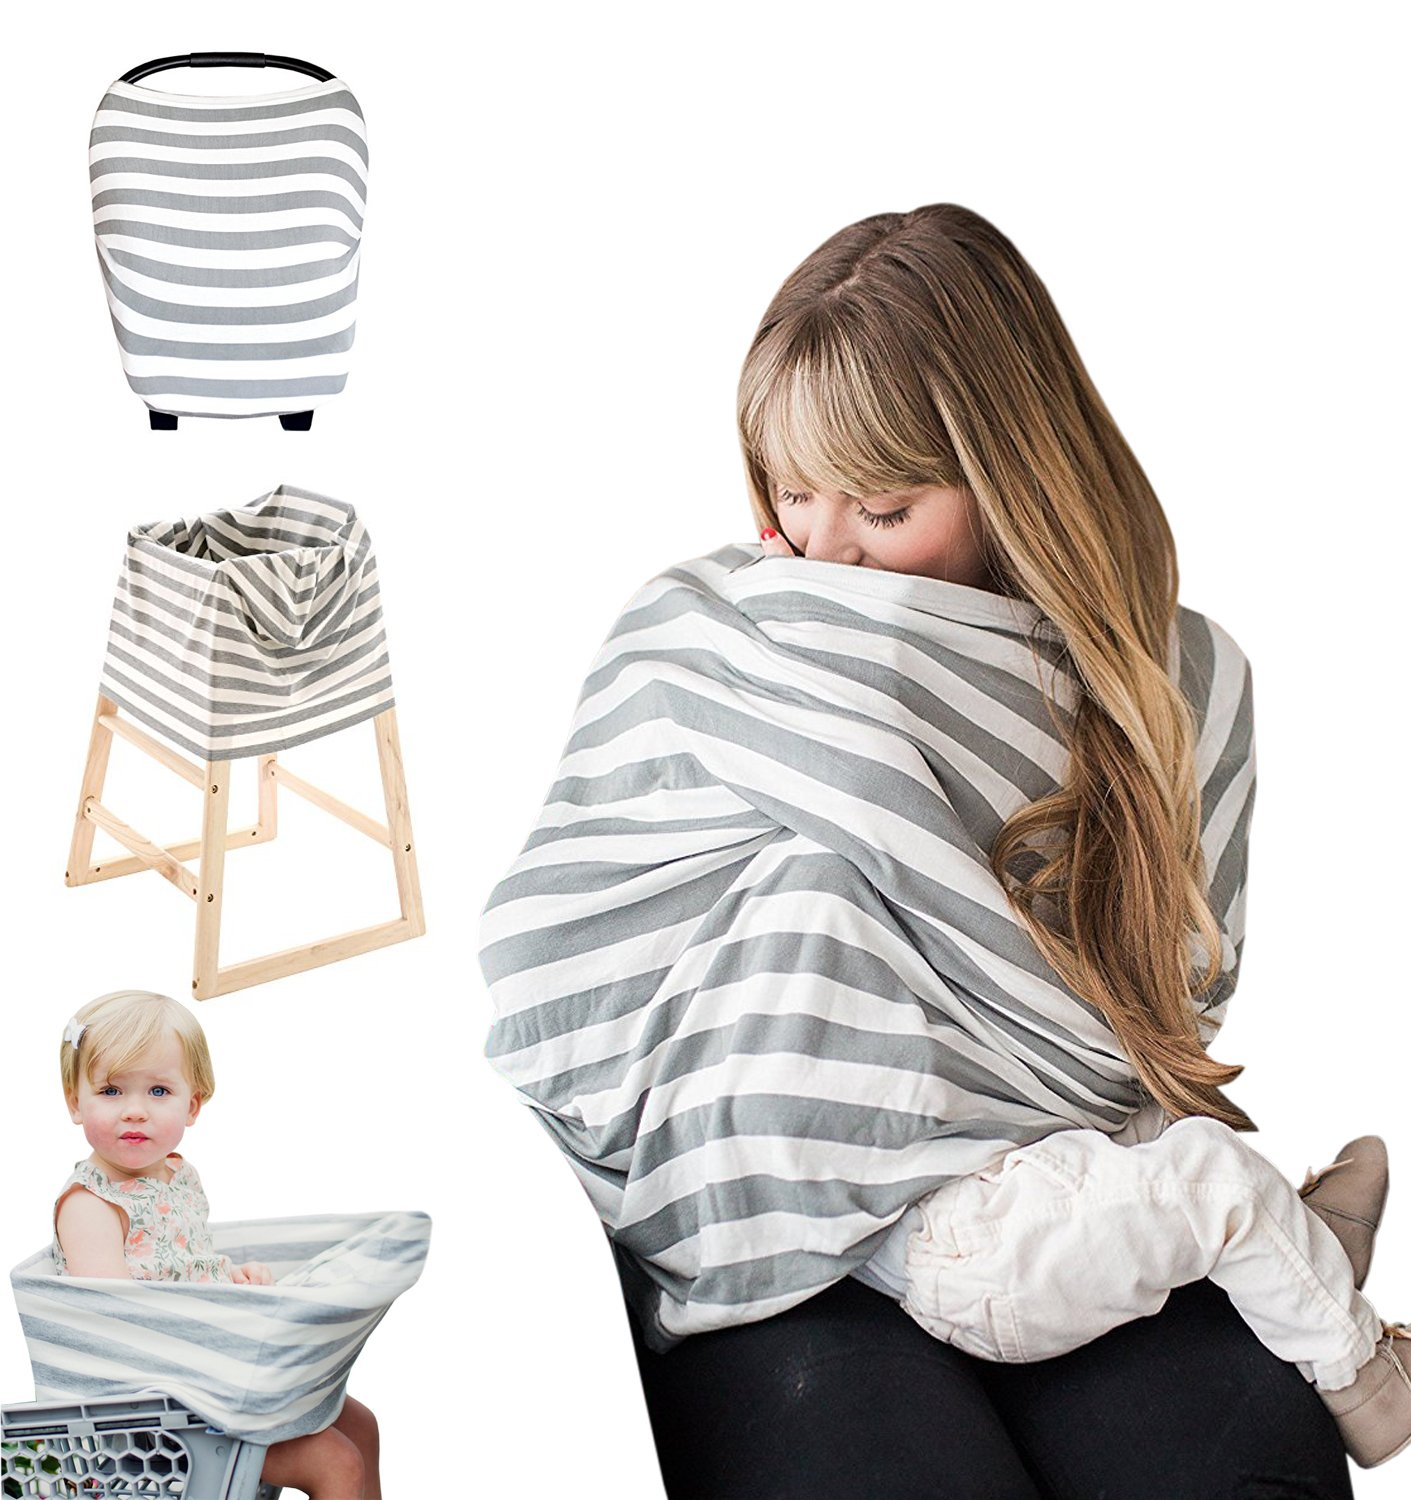 Nursing Cover For Breastfeeding - Baby Car Seat Cover - Stroller, Shopping Cart, High Chair, Carseat Covers | Baby Gift For Boys and Girls | Multi-Use Nursing Scarf With Bonus Pouch